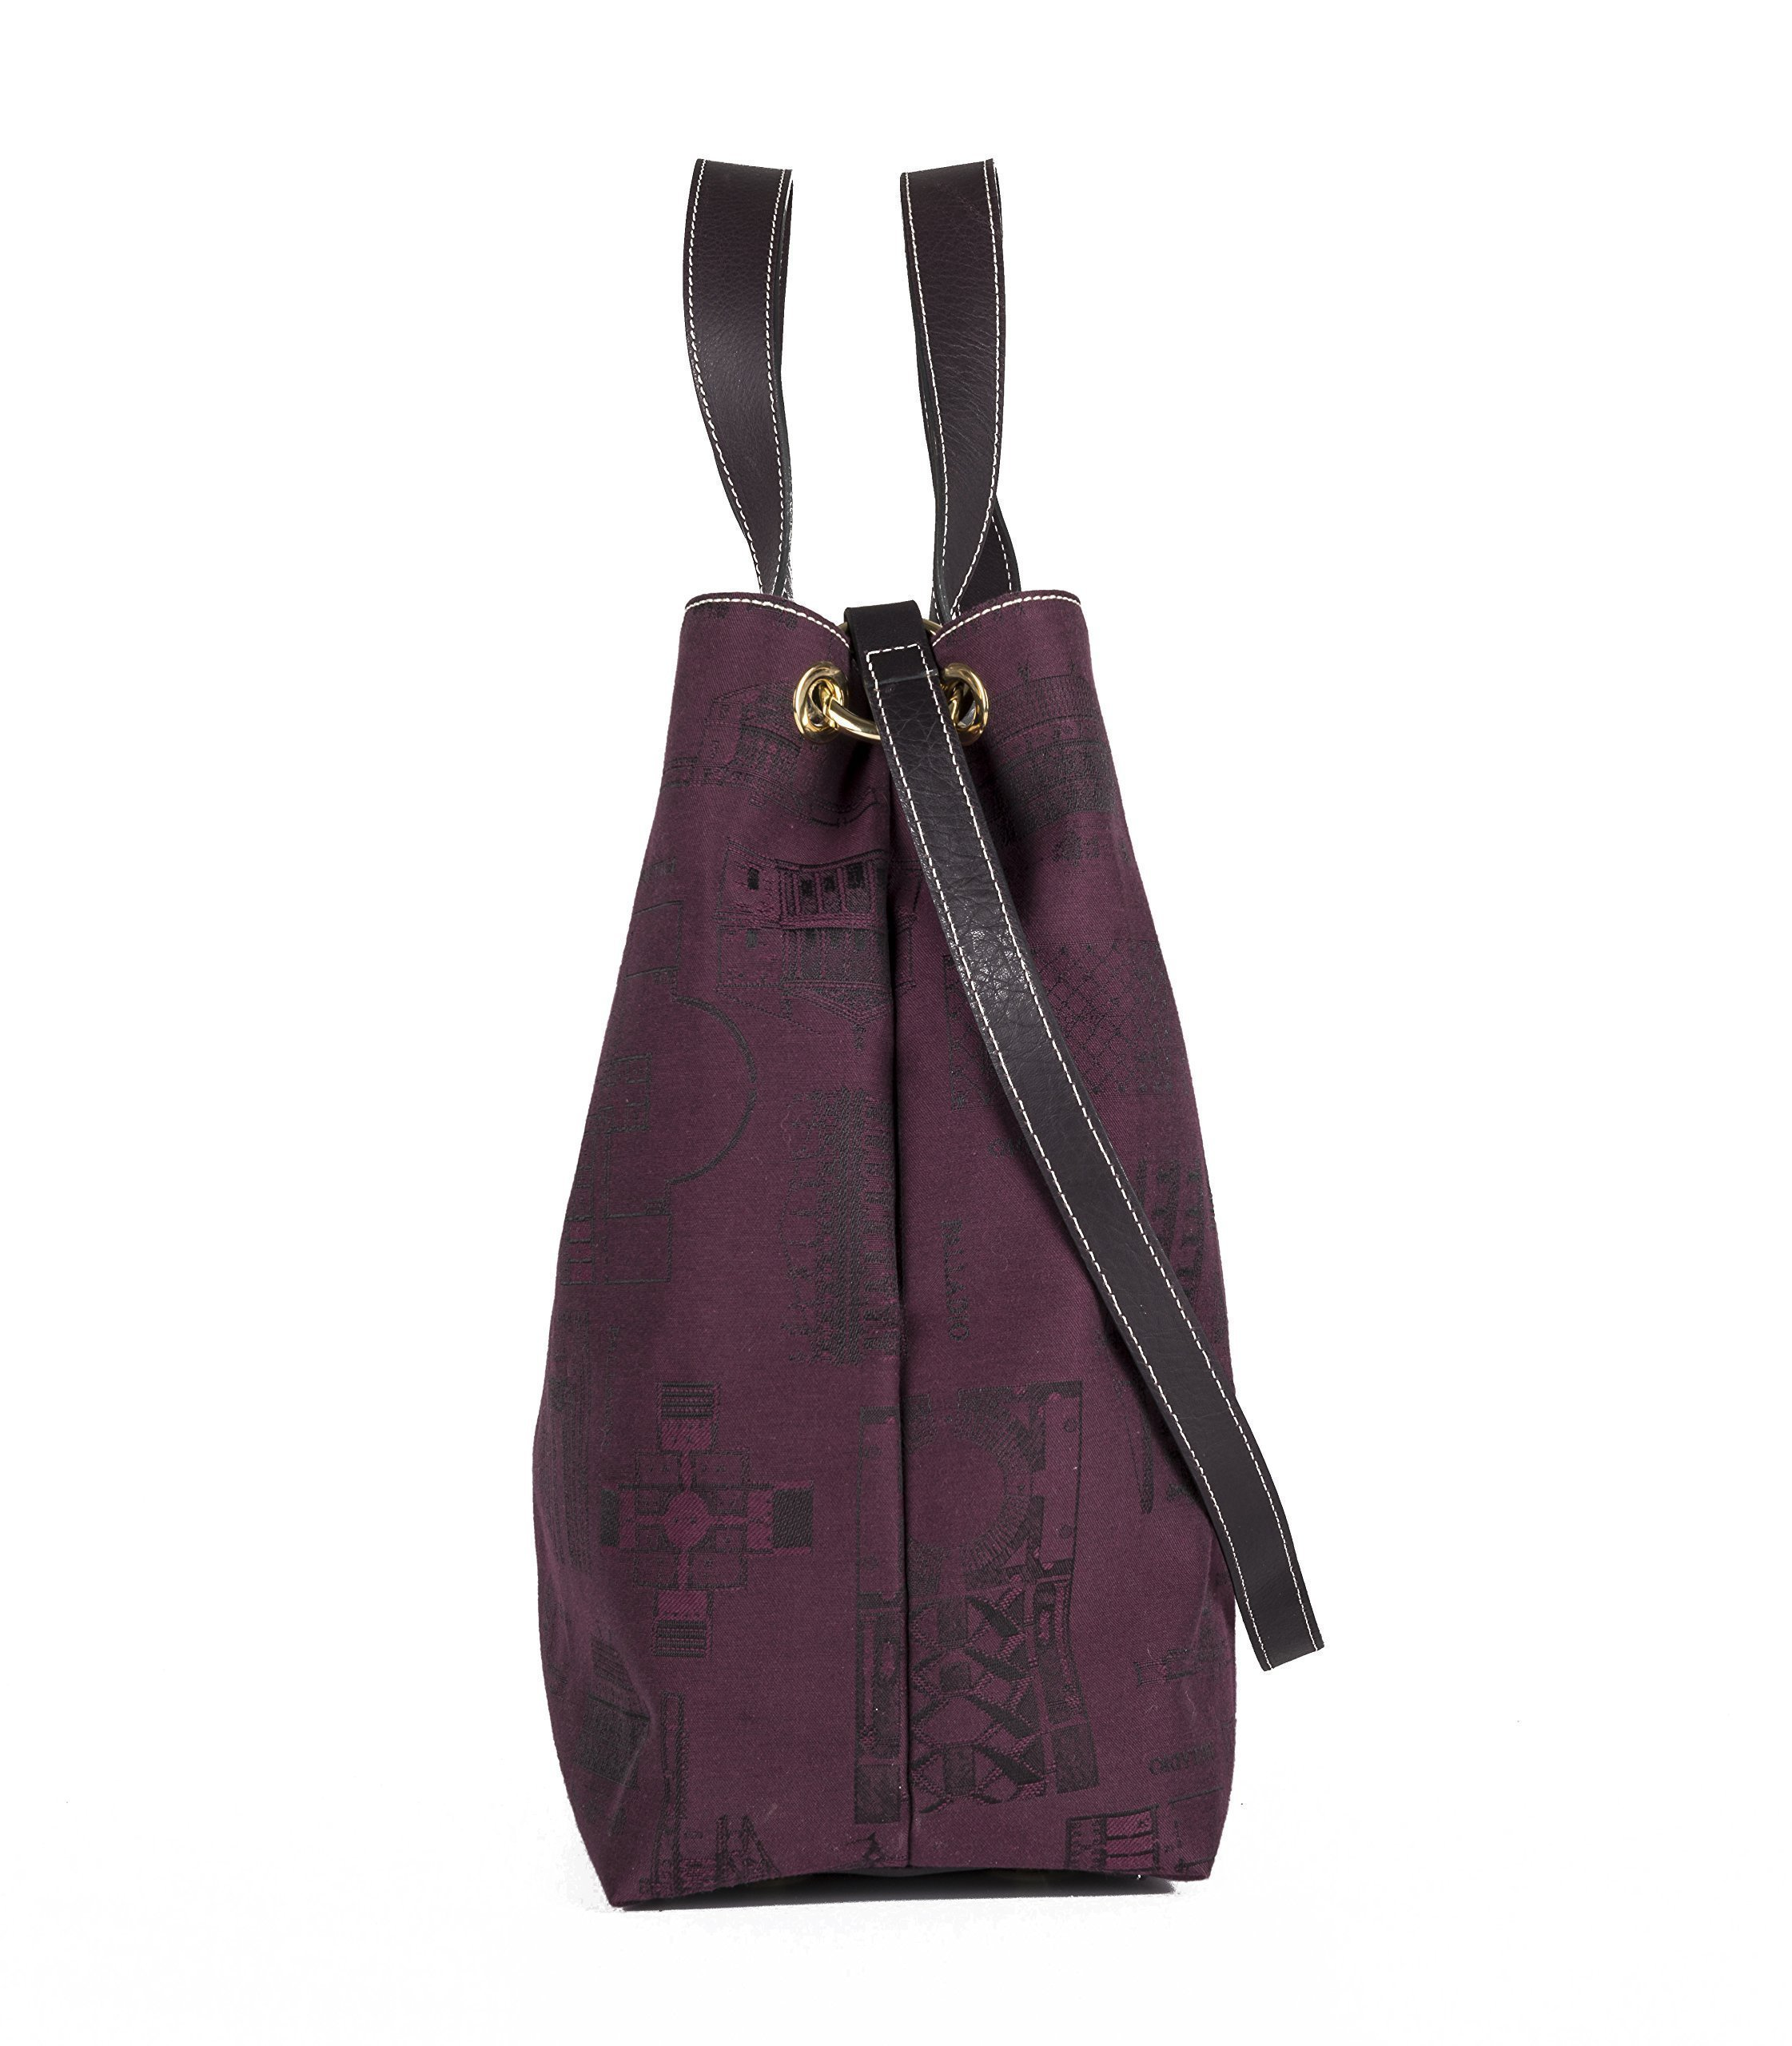 VILLA PISANI bag (with hooks). Made in Italy - handmade-bags